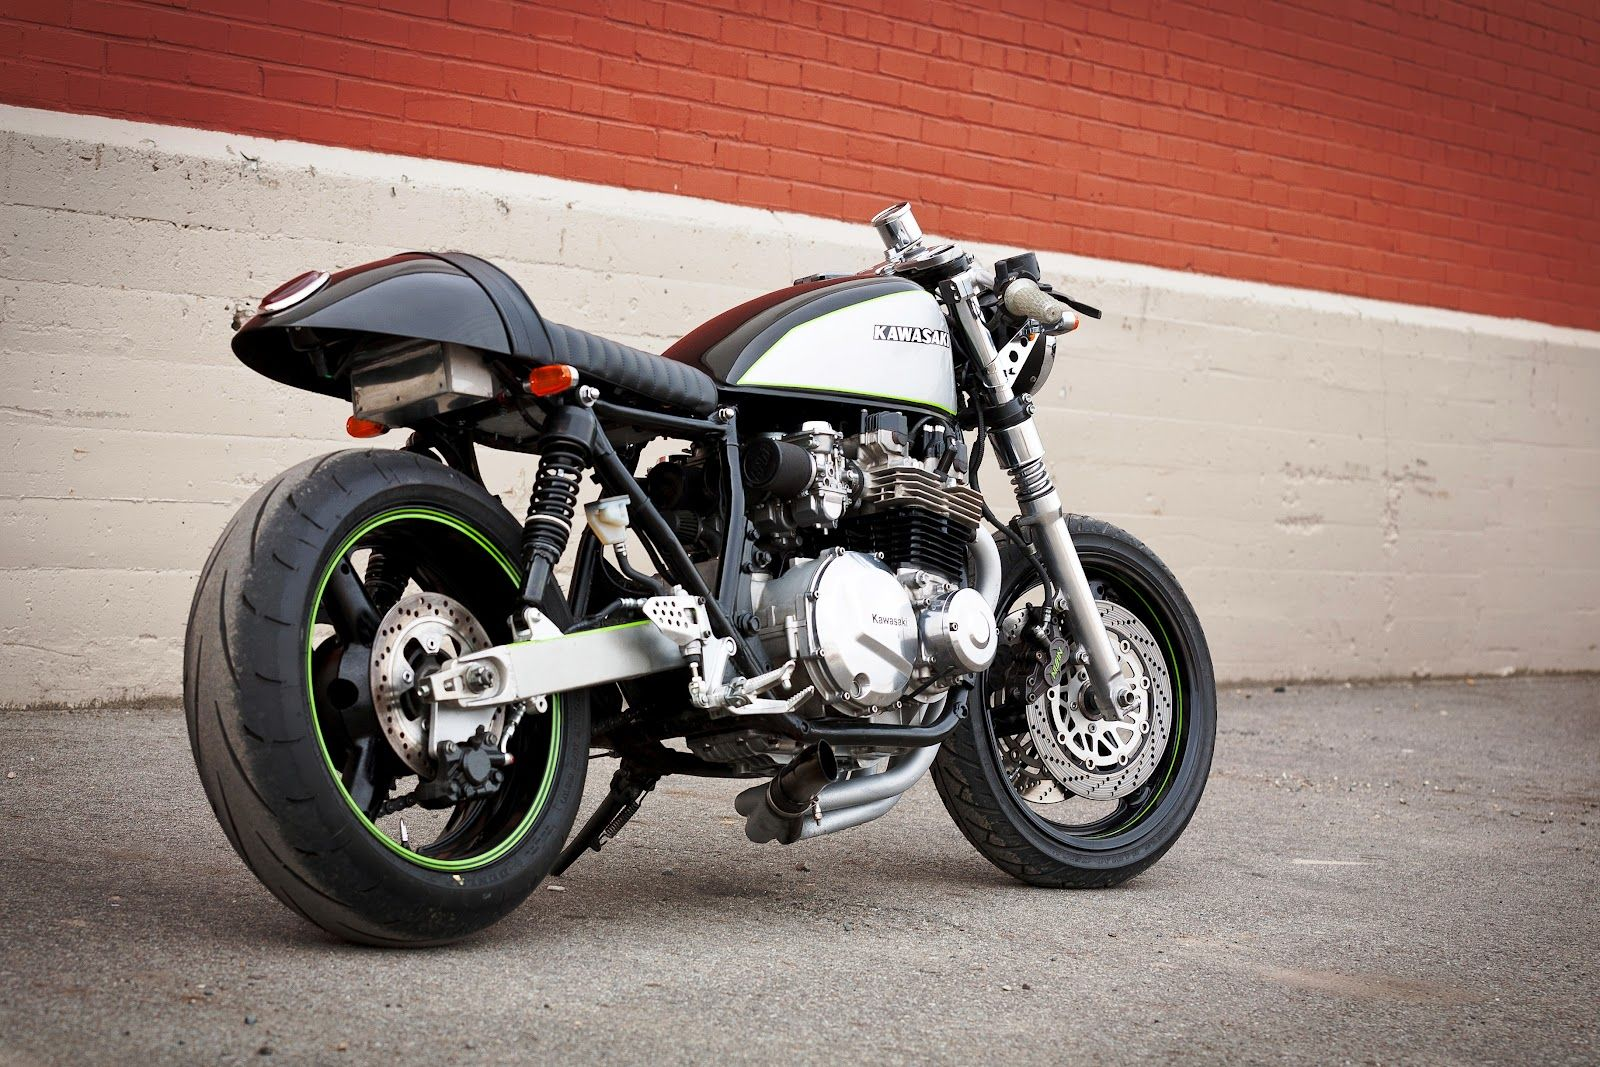 Kawasaki KZ1000 Cafe Racer | For the Petrolheads | Kawasaki